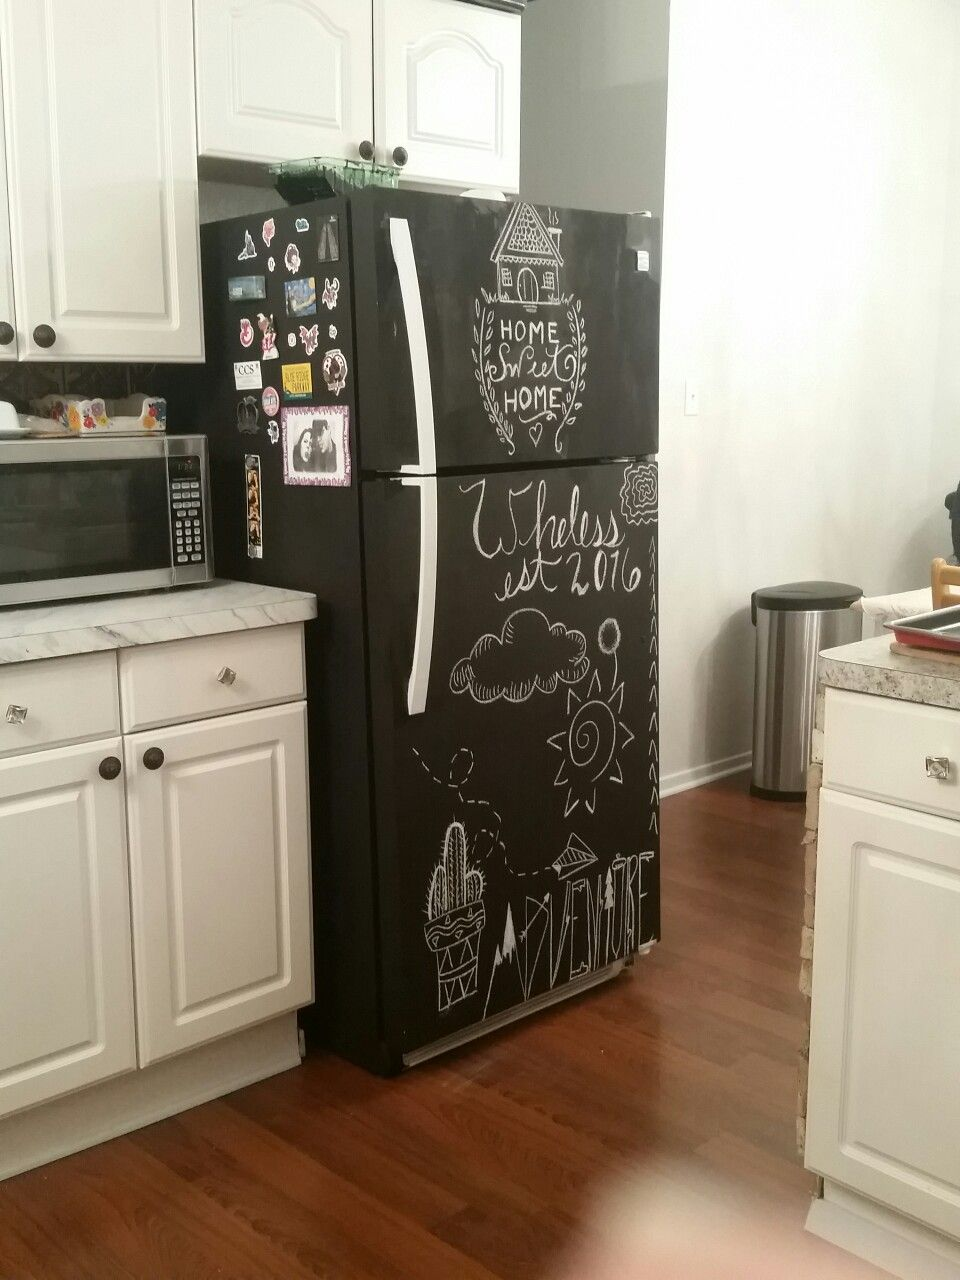 My Chalkboard Fridge Chalkboard Fridge Home Decor Home